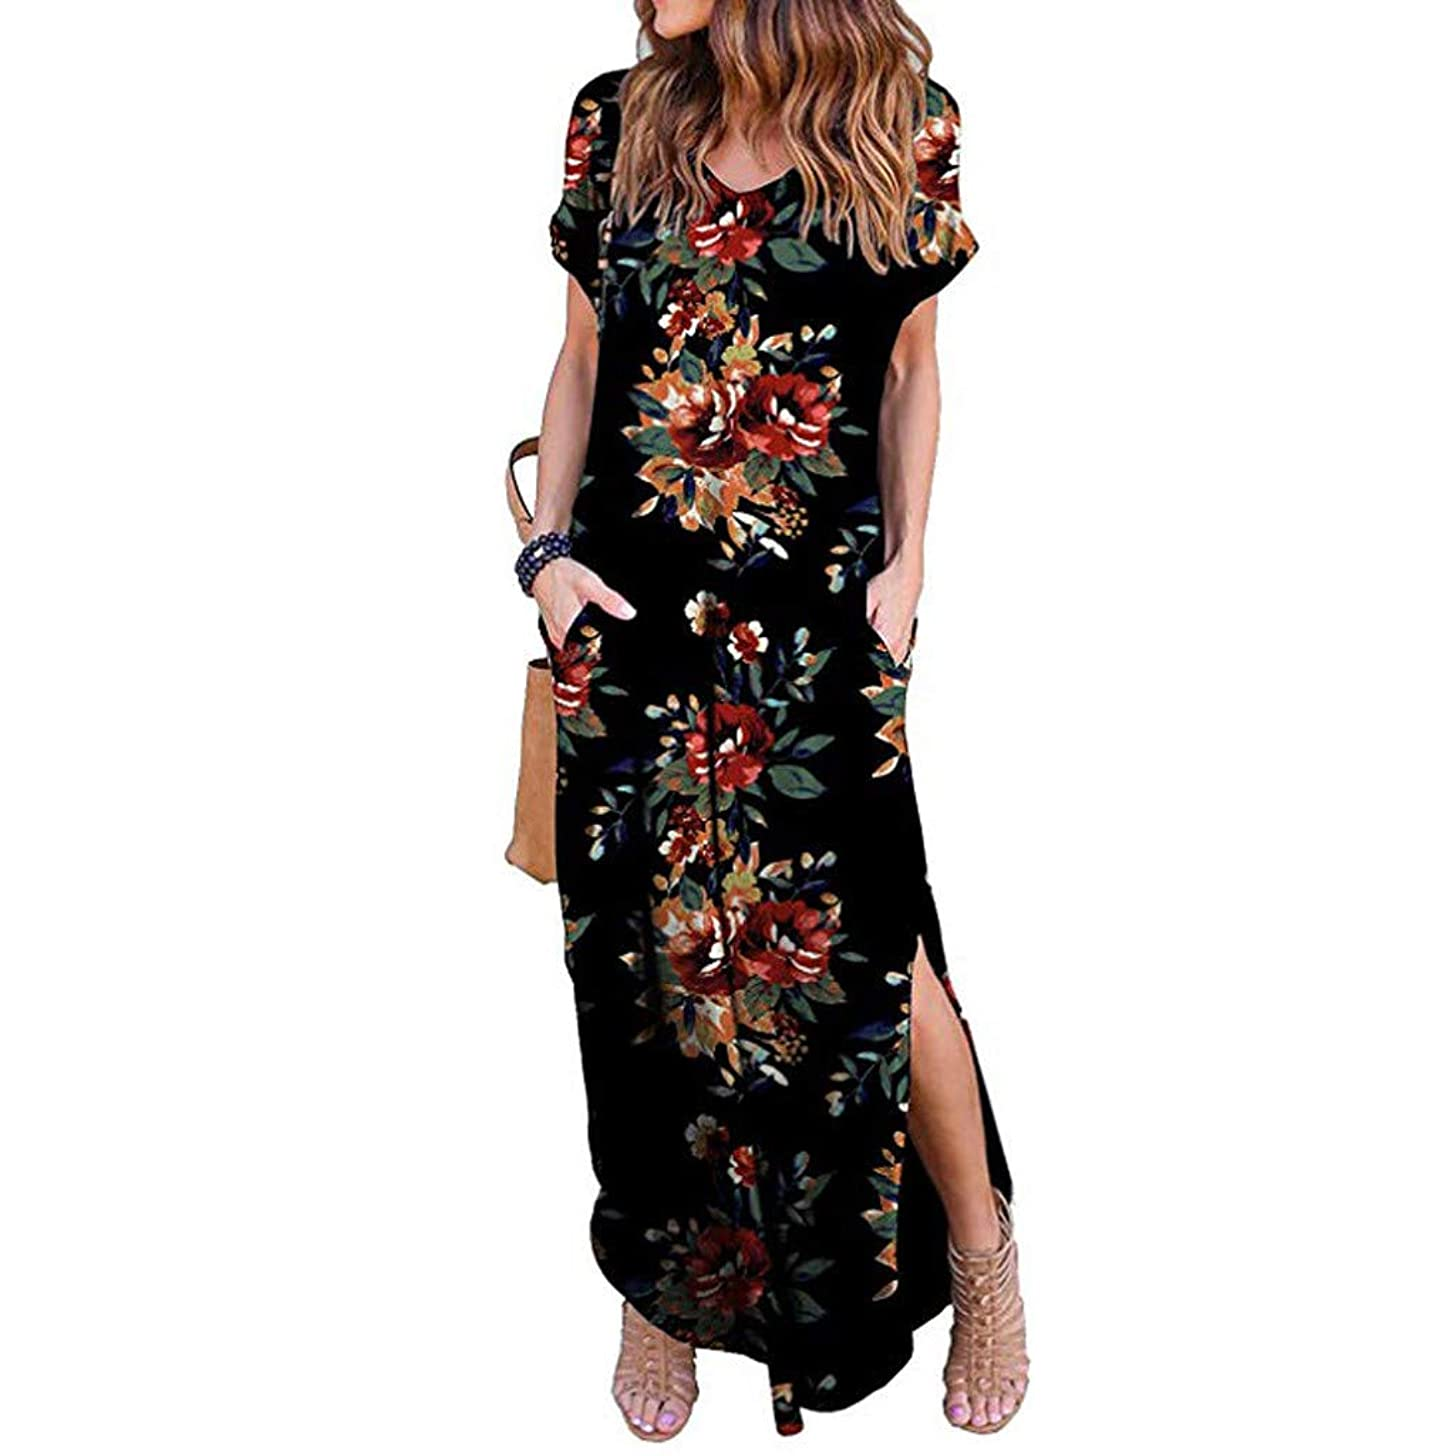 Gibobby Women's Printed Floral Maxi Dresses Casual Long Skirt Short Sleeve Loose Beach Long Maxi Dresses with Pockets